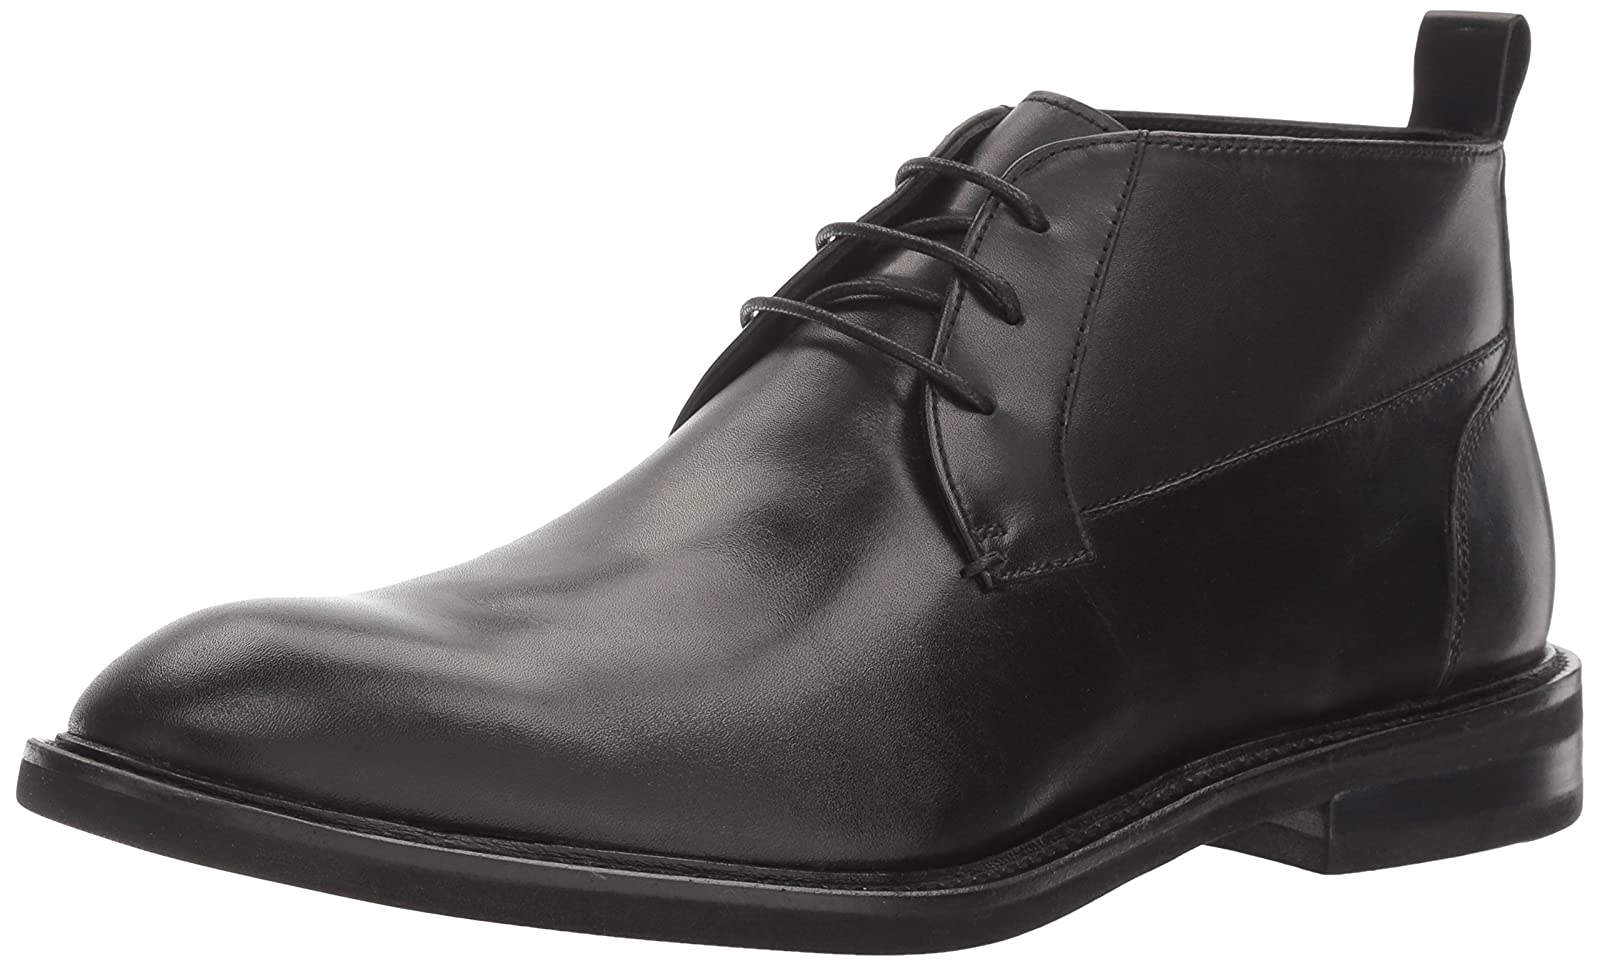 Gordon Rush Men's Dawson Chukka Boot 12 M US - 1